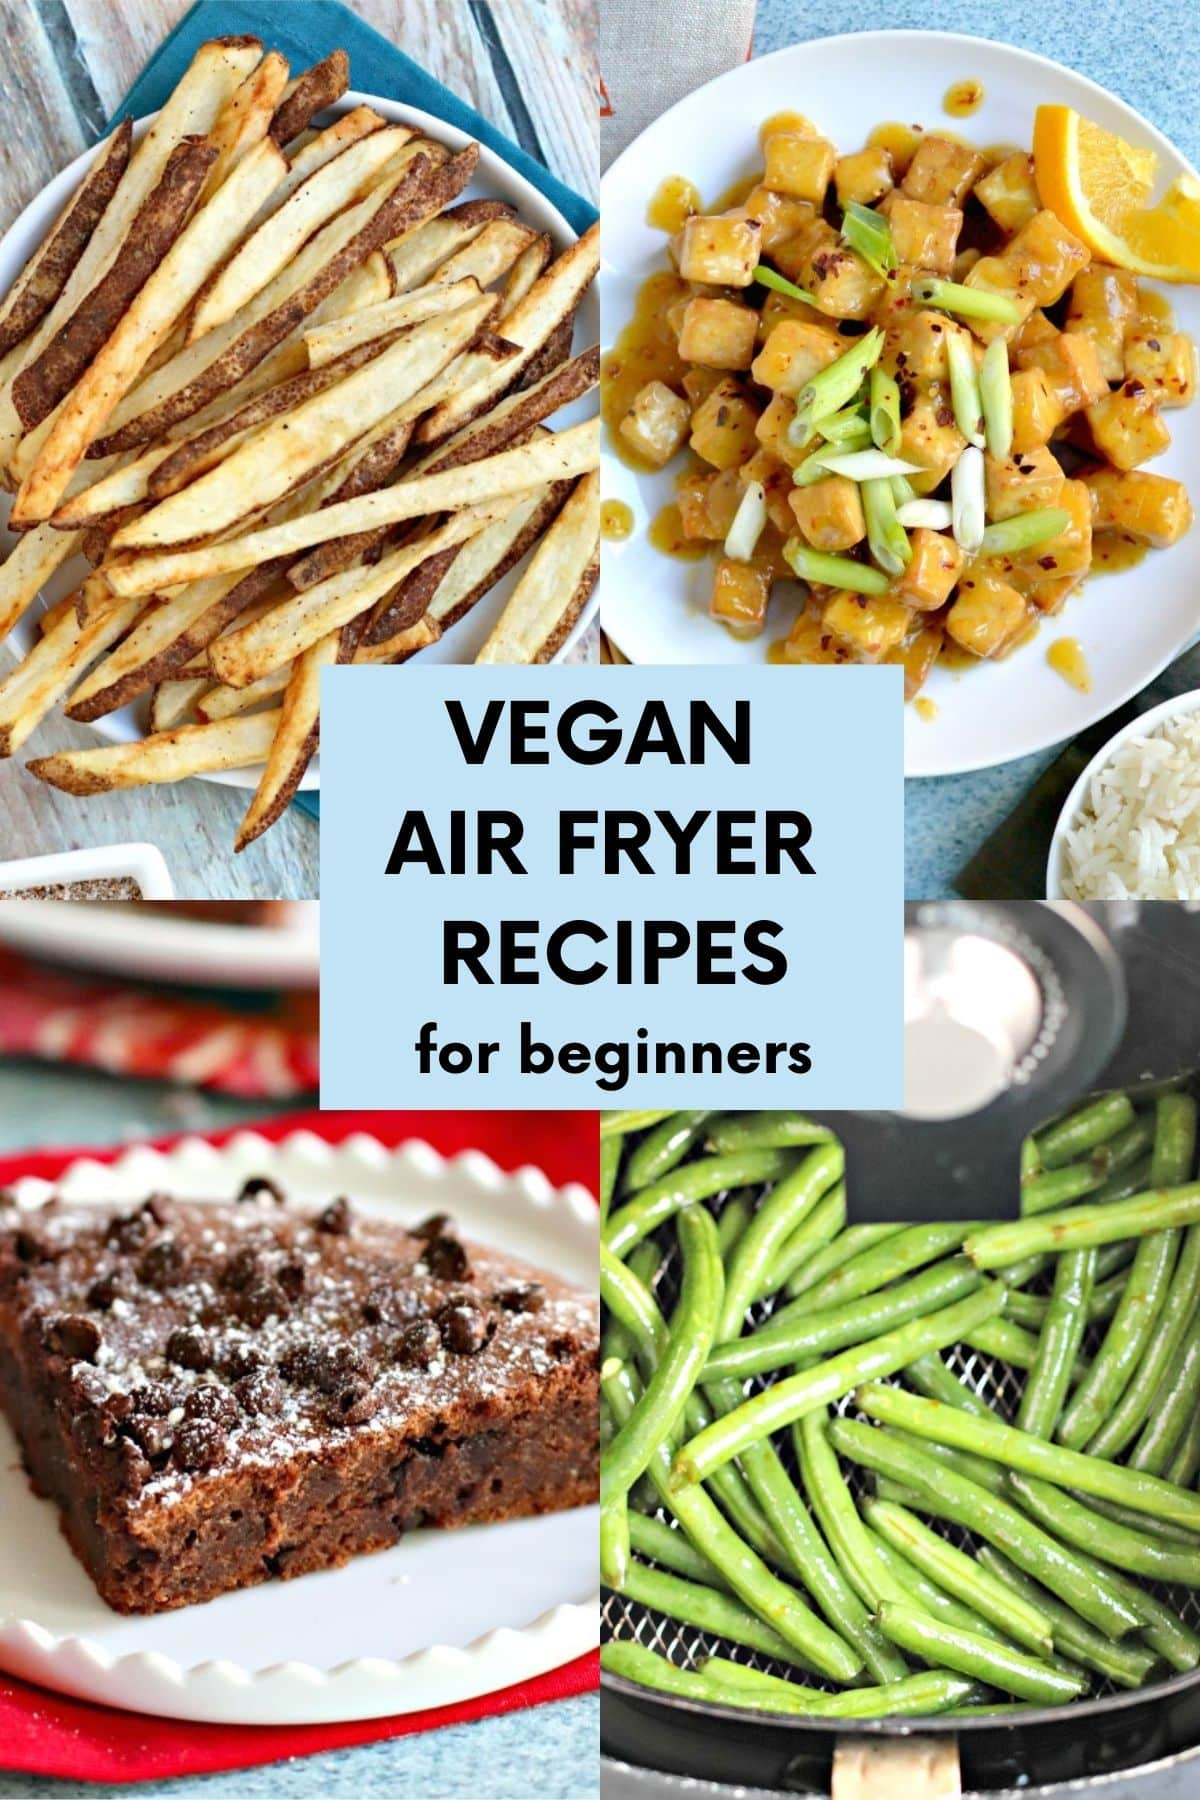 Collage of images of French fries, orange tofu, green beans in an air fryer basket, and a brownie